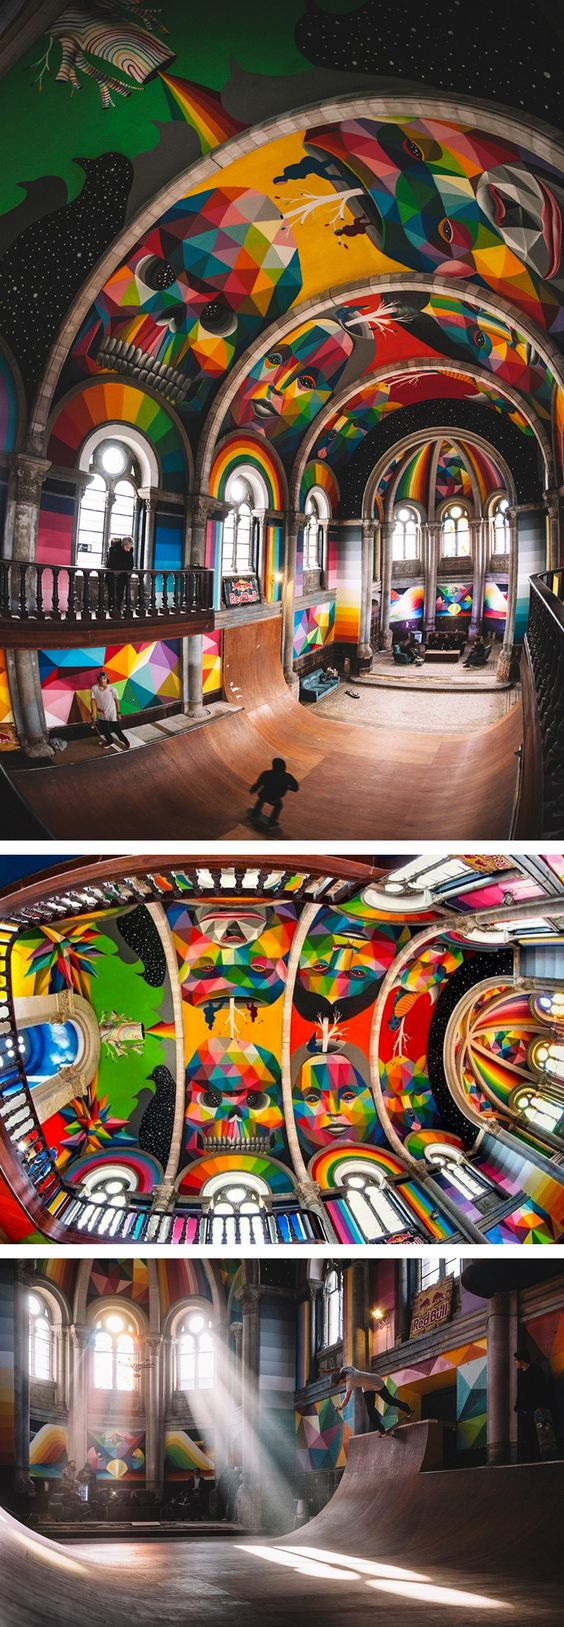 A 100-Year-Old Church in Spain Transformed into a Skate Park Covered in Murals…: